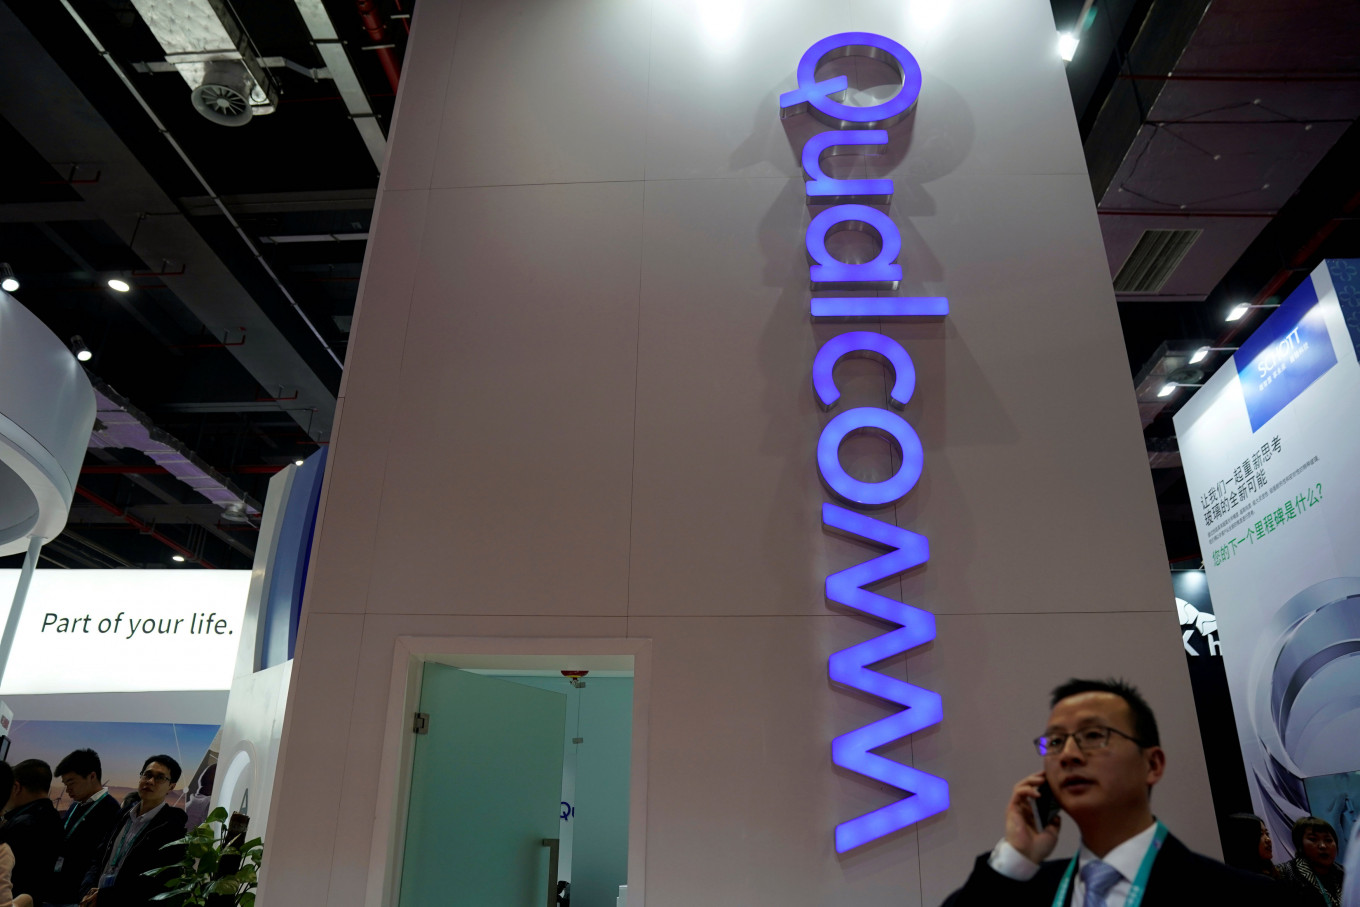 Qualcomm rolls out 5G chips for cars, PCs and home broadband